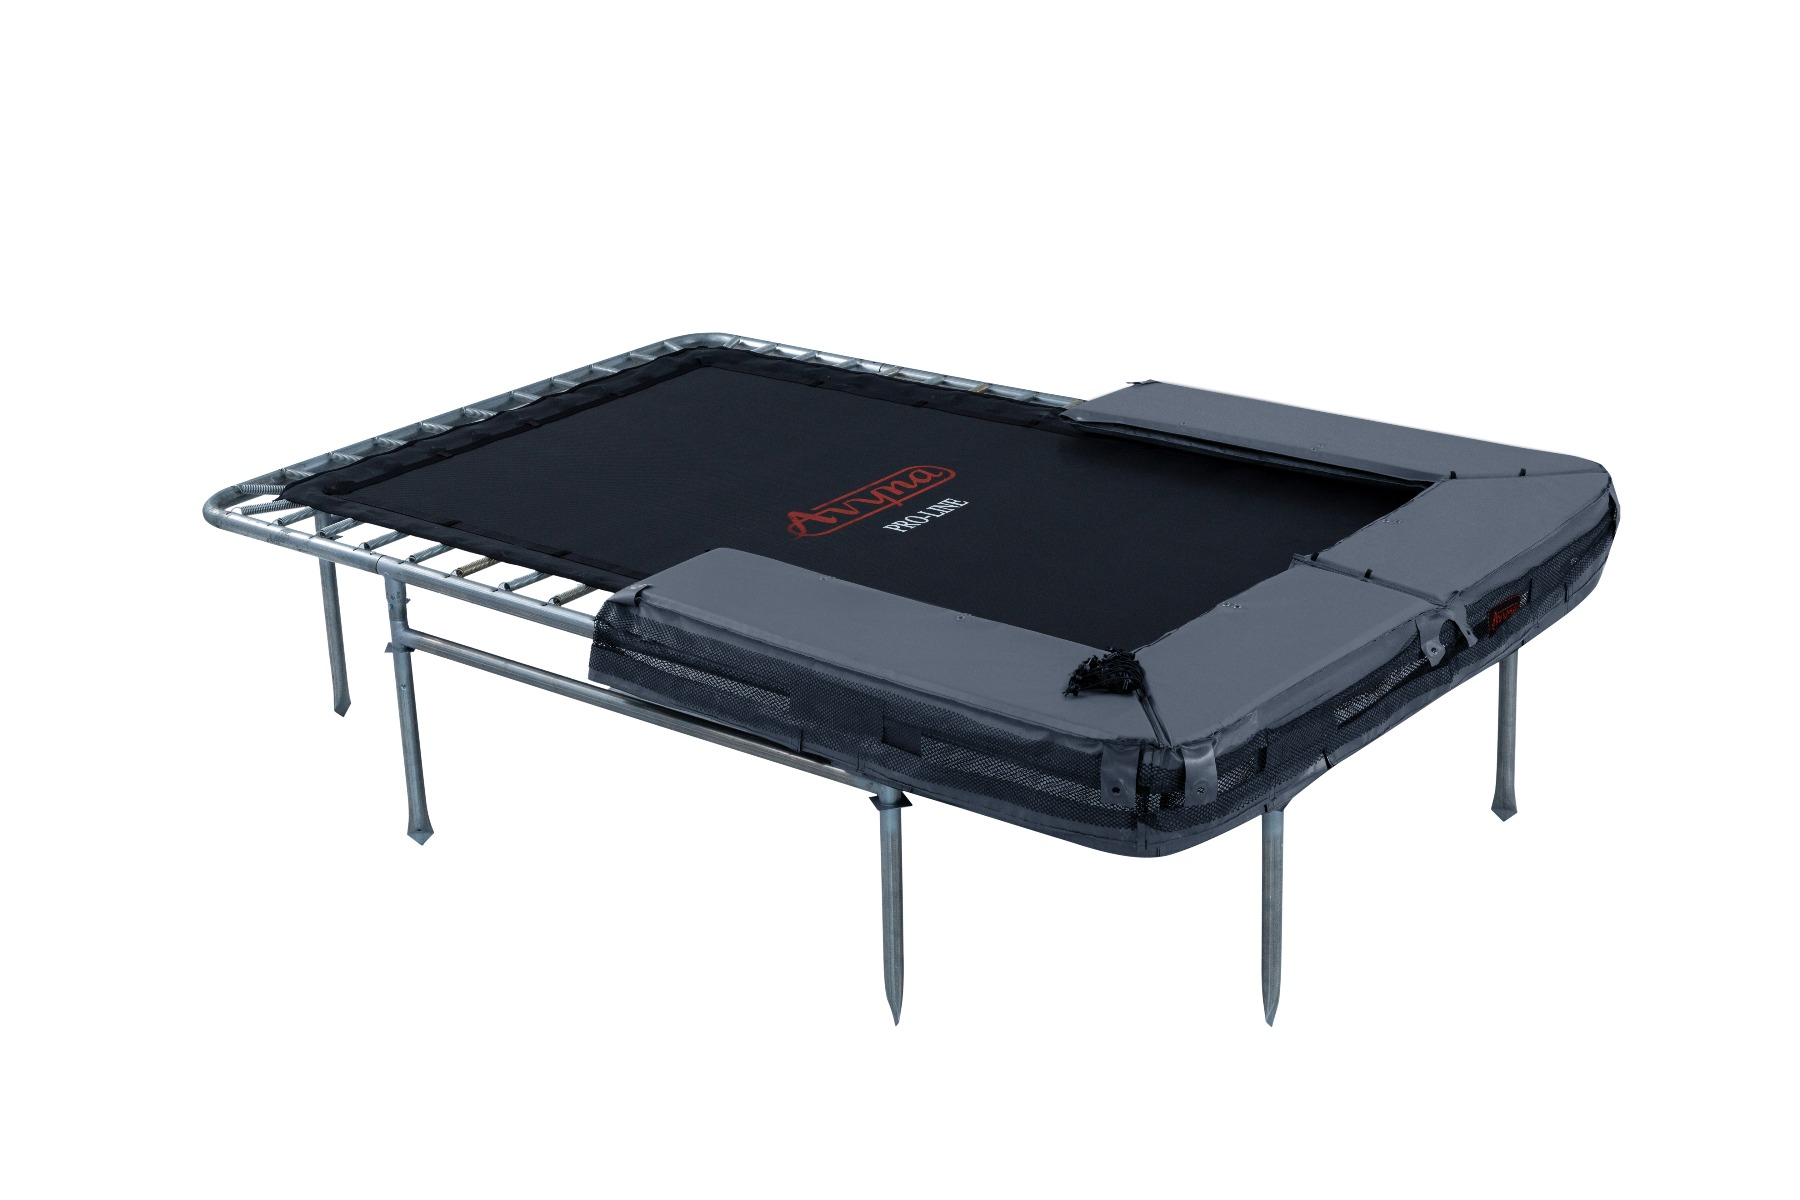 Avyna PRO-LINE 300x225 cm InGround trampolinerand set 23